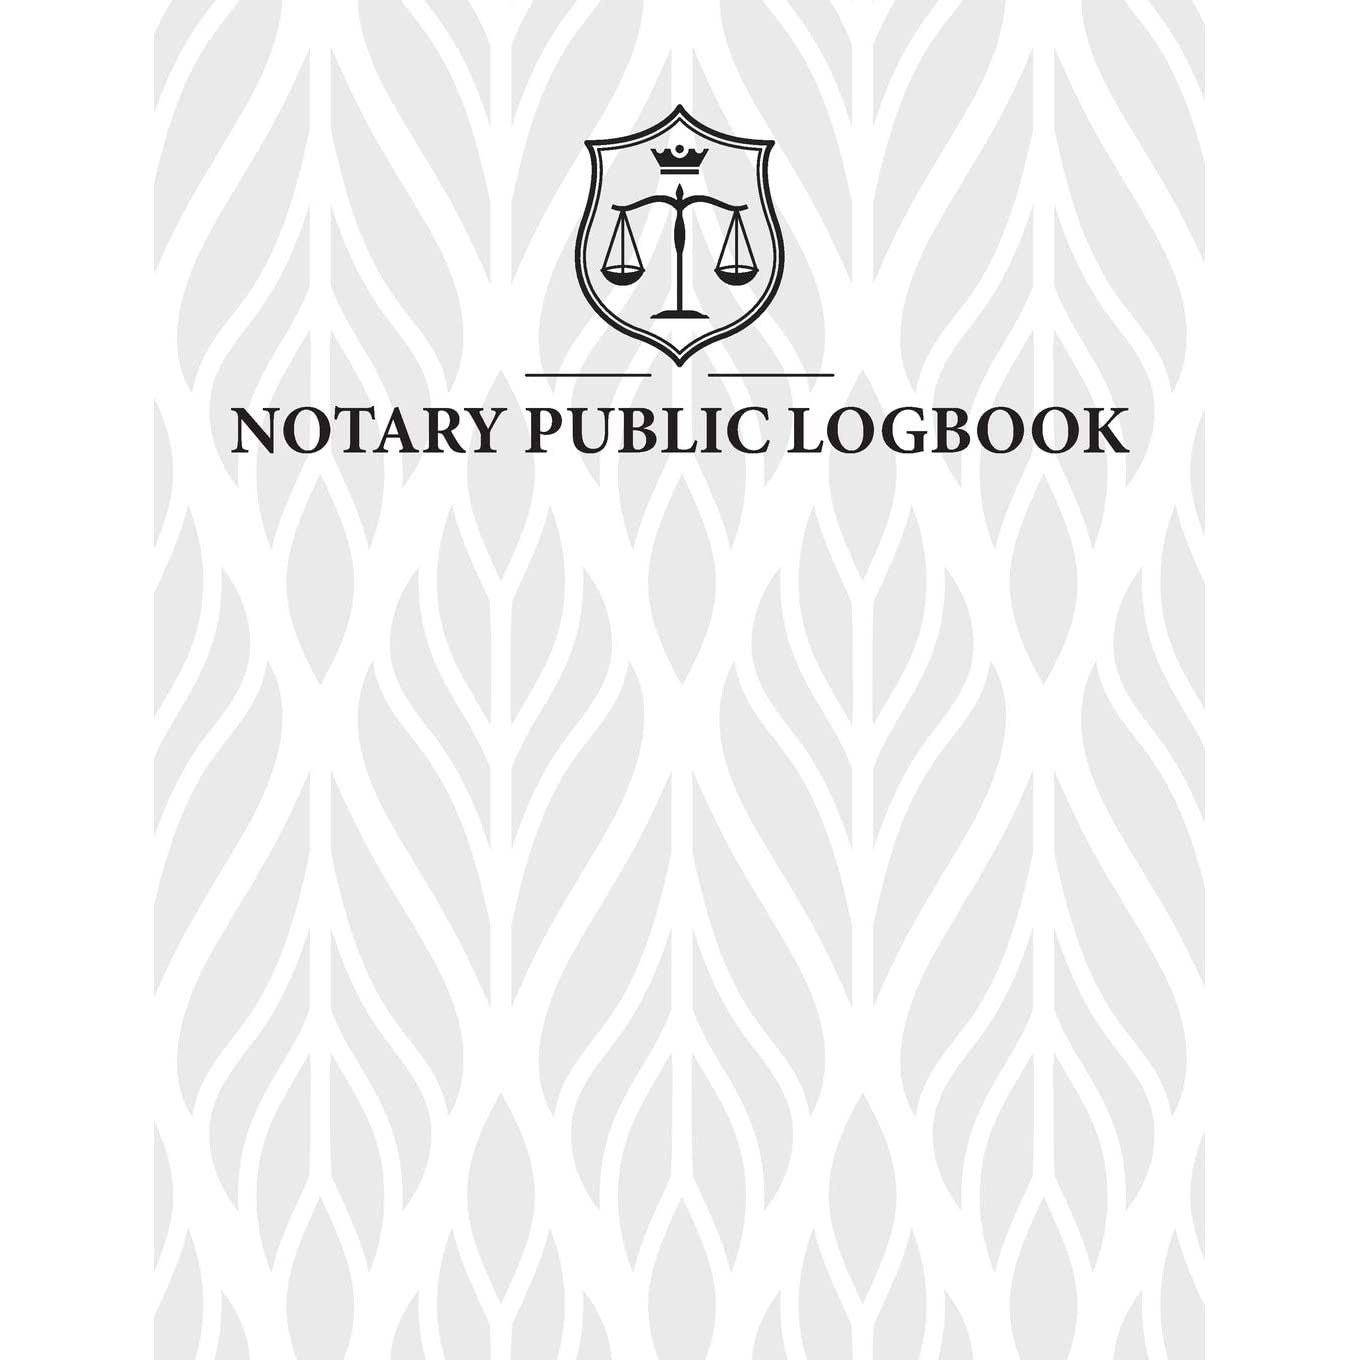 This free sample invoice template with gst and pst taxes shows what information needs to be on an invoice from a canadian small business. Notary Public Logbook Official Notary Records Journal Public Notary Record Book Notarial Acts Events Template Log Book Notary Receipt Book Notary Stamp Notebook Journaling Keeper Logbook By Lisa Tory